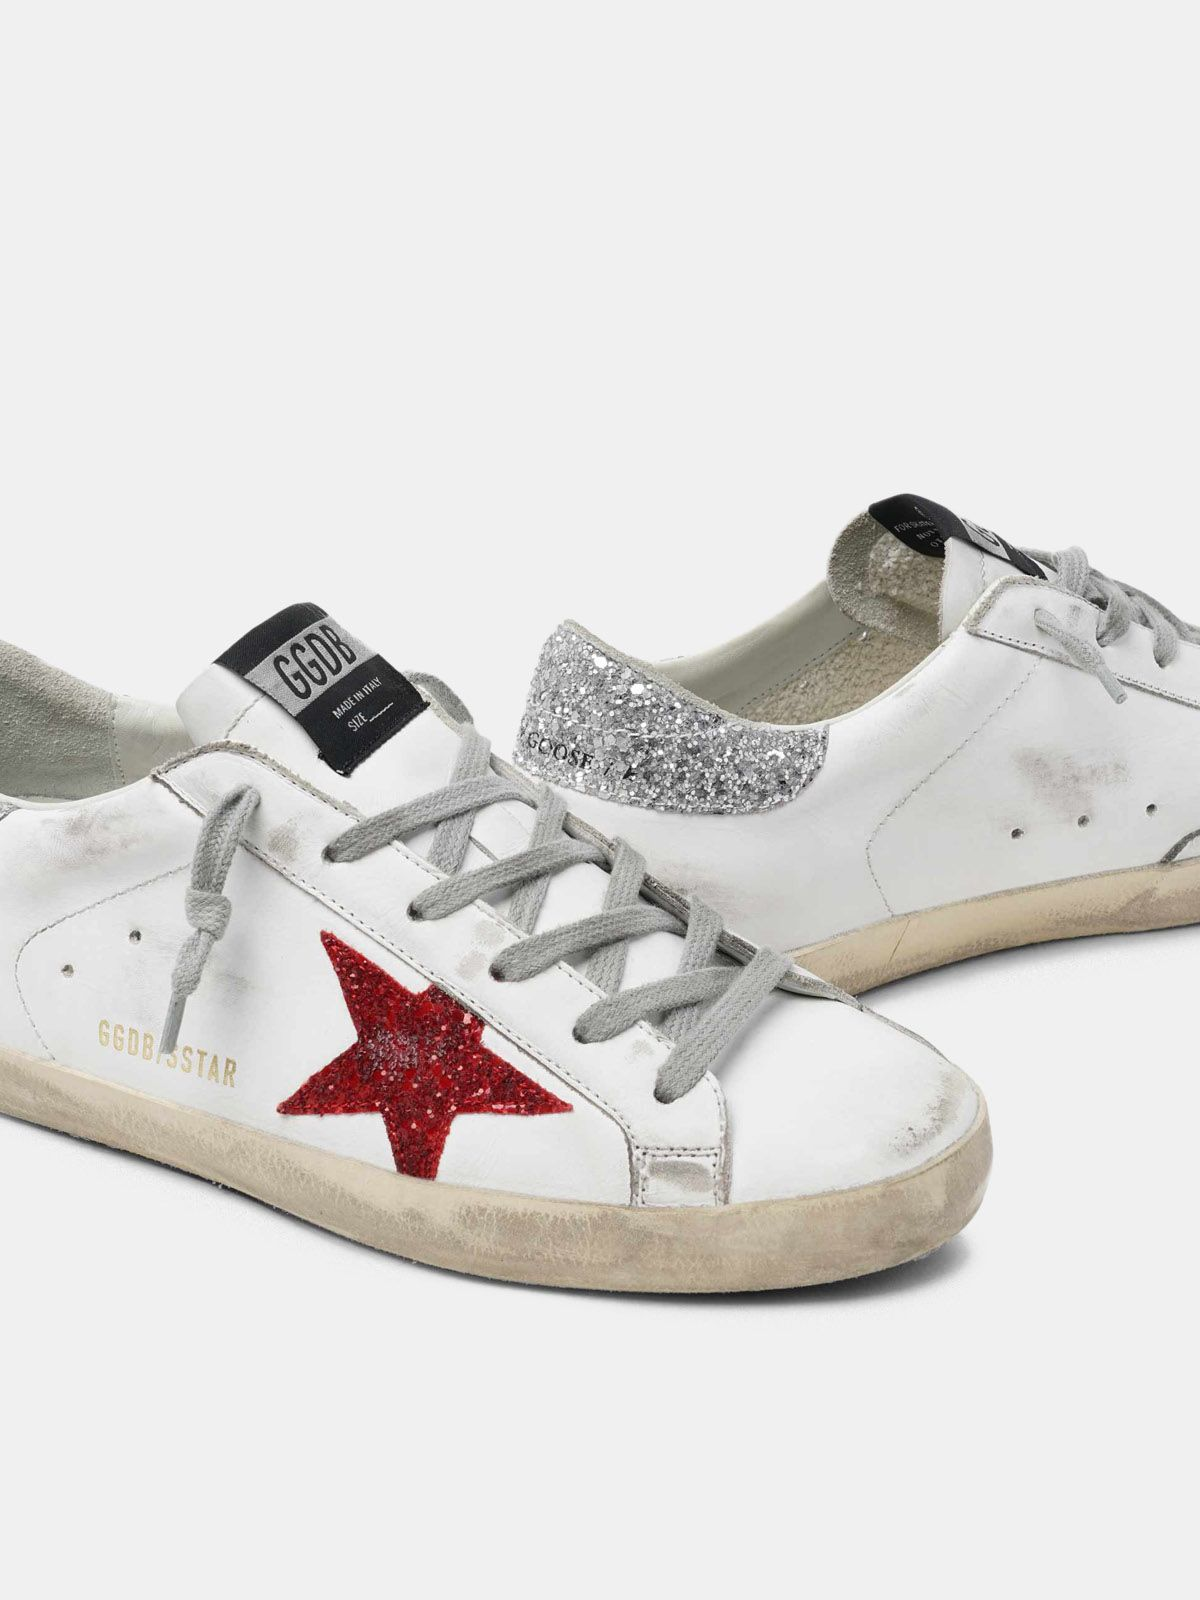 Golden Goose - White Super-Star sneakers in leather with glittery red star in